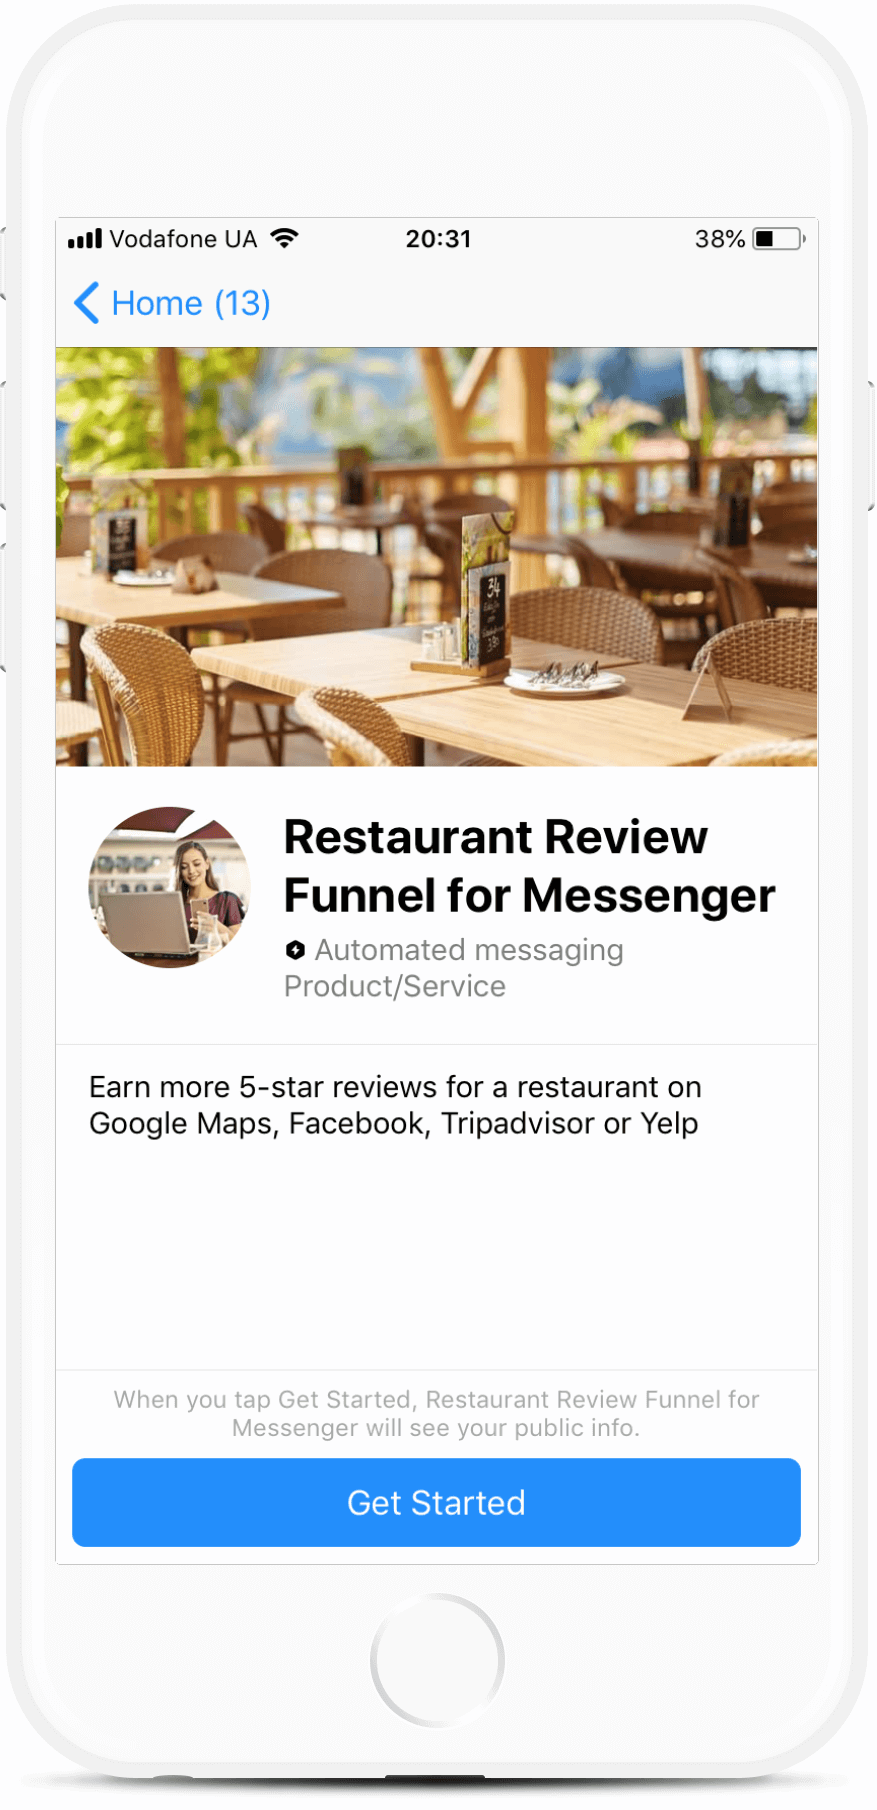 Restaurant Review Funnel for Messenger